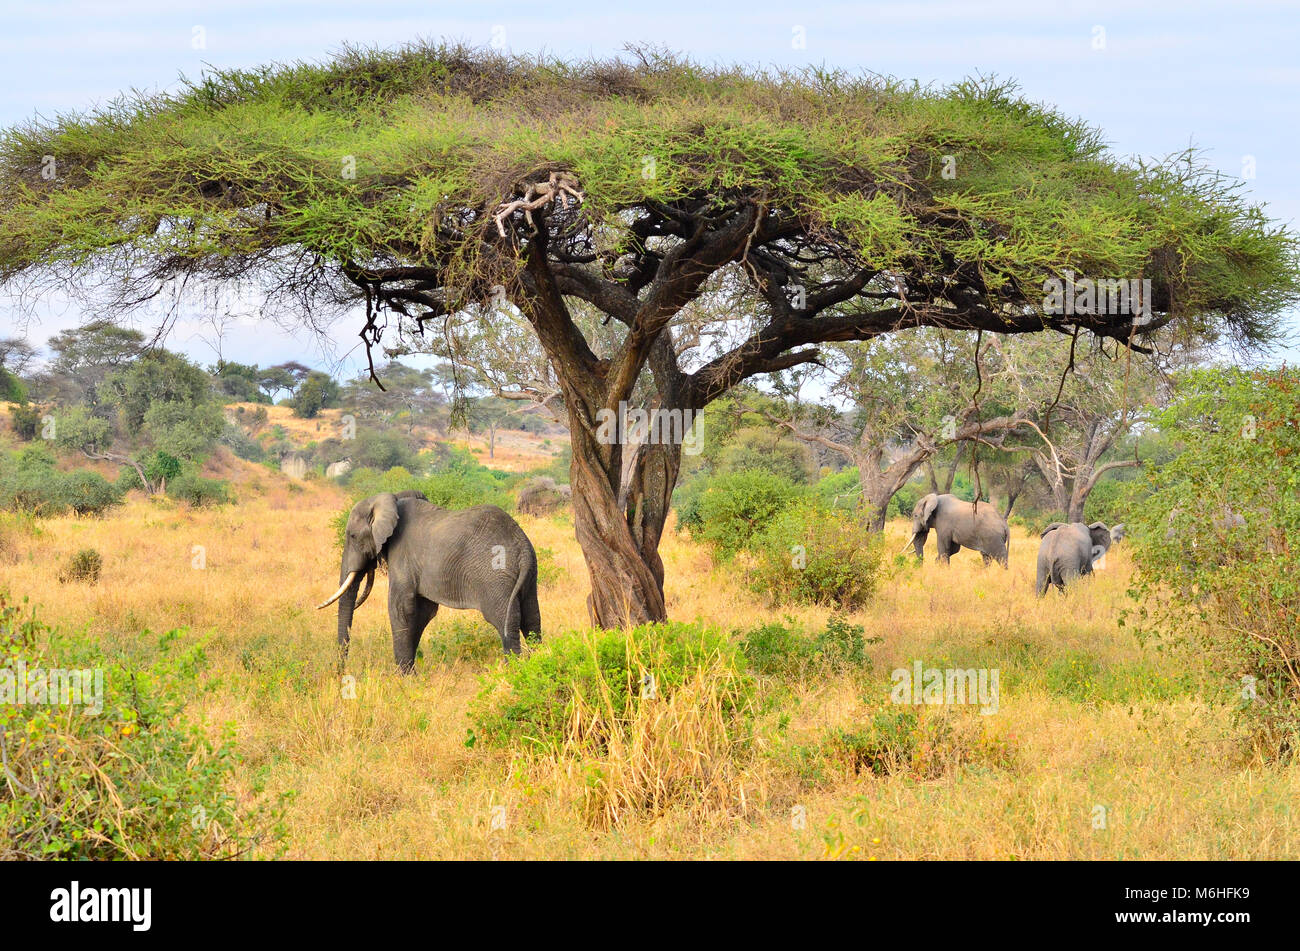 Tarangire national park is an excellent game viewing destination in Tanzania. Elephant under acacia tortilla - Stock Image